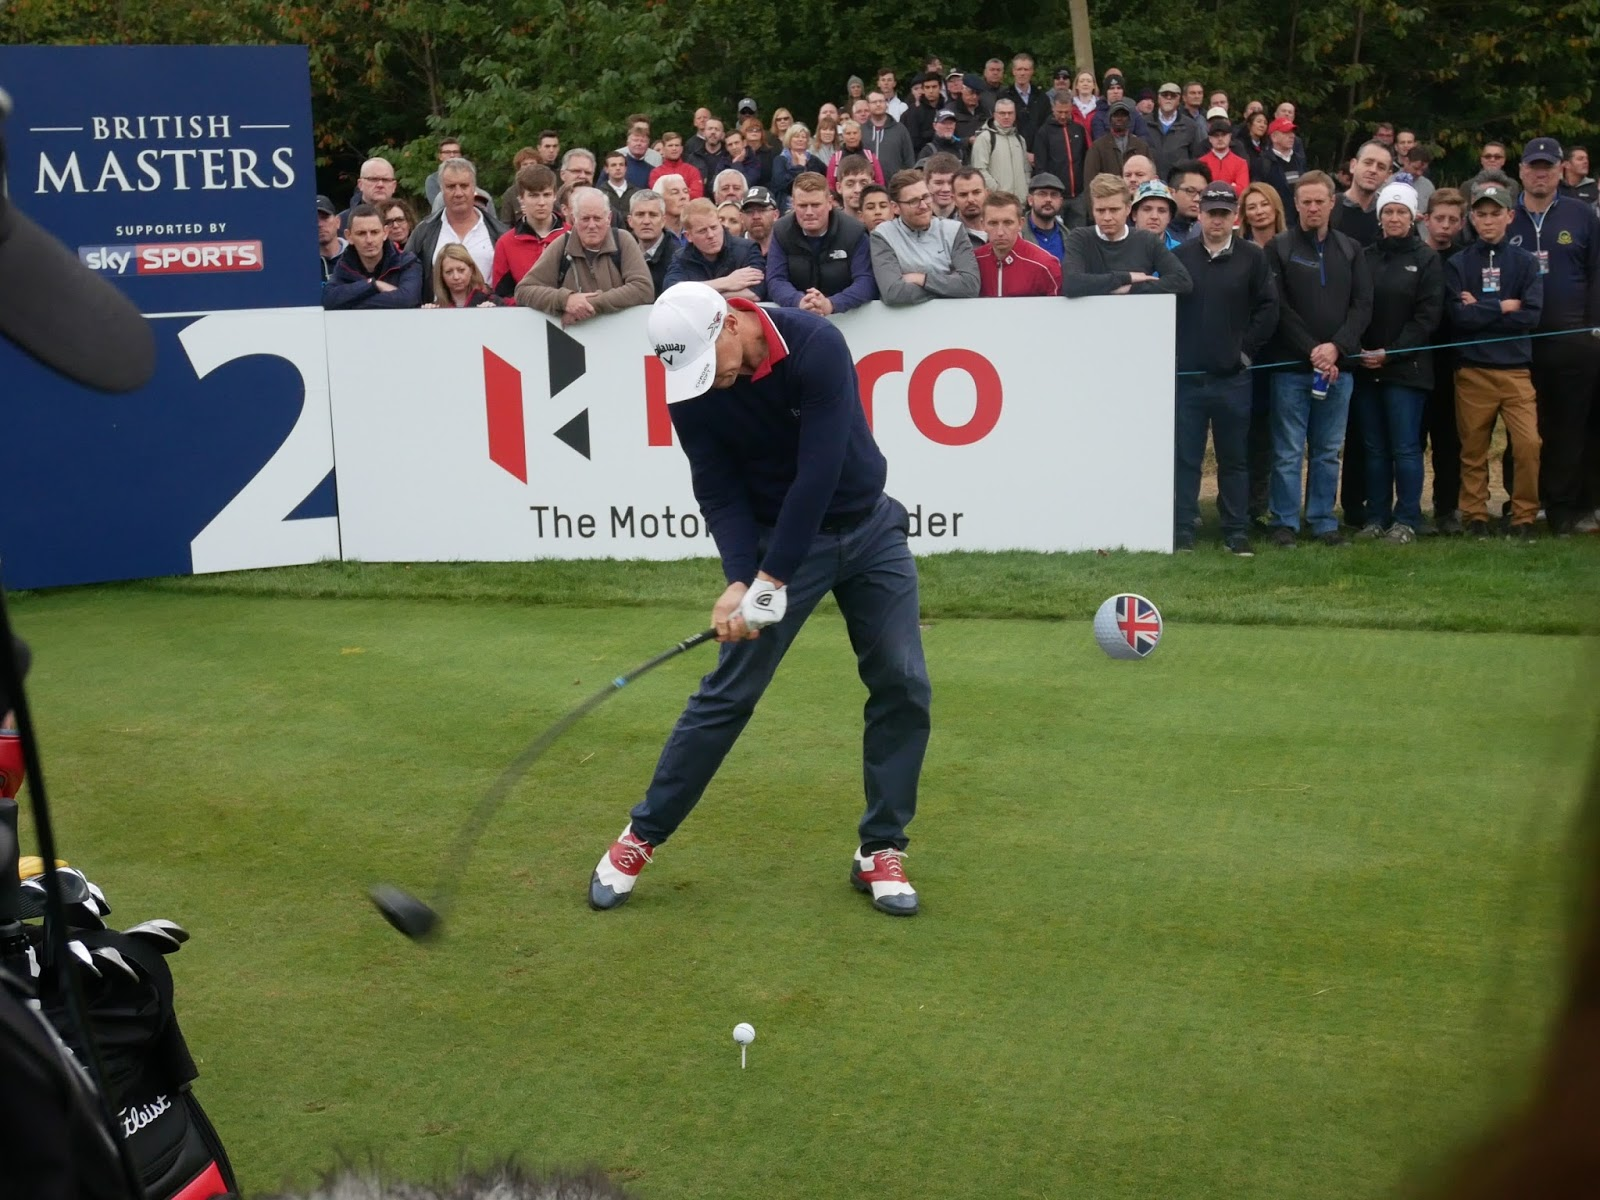 Alex Noren drives at the 2nd hole at the British Masters 2016